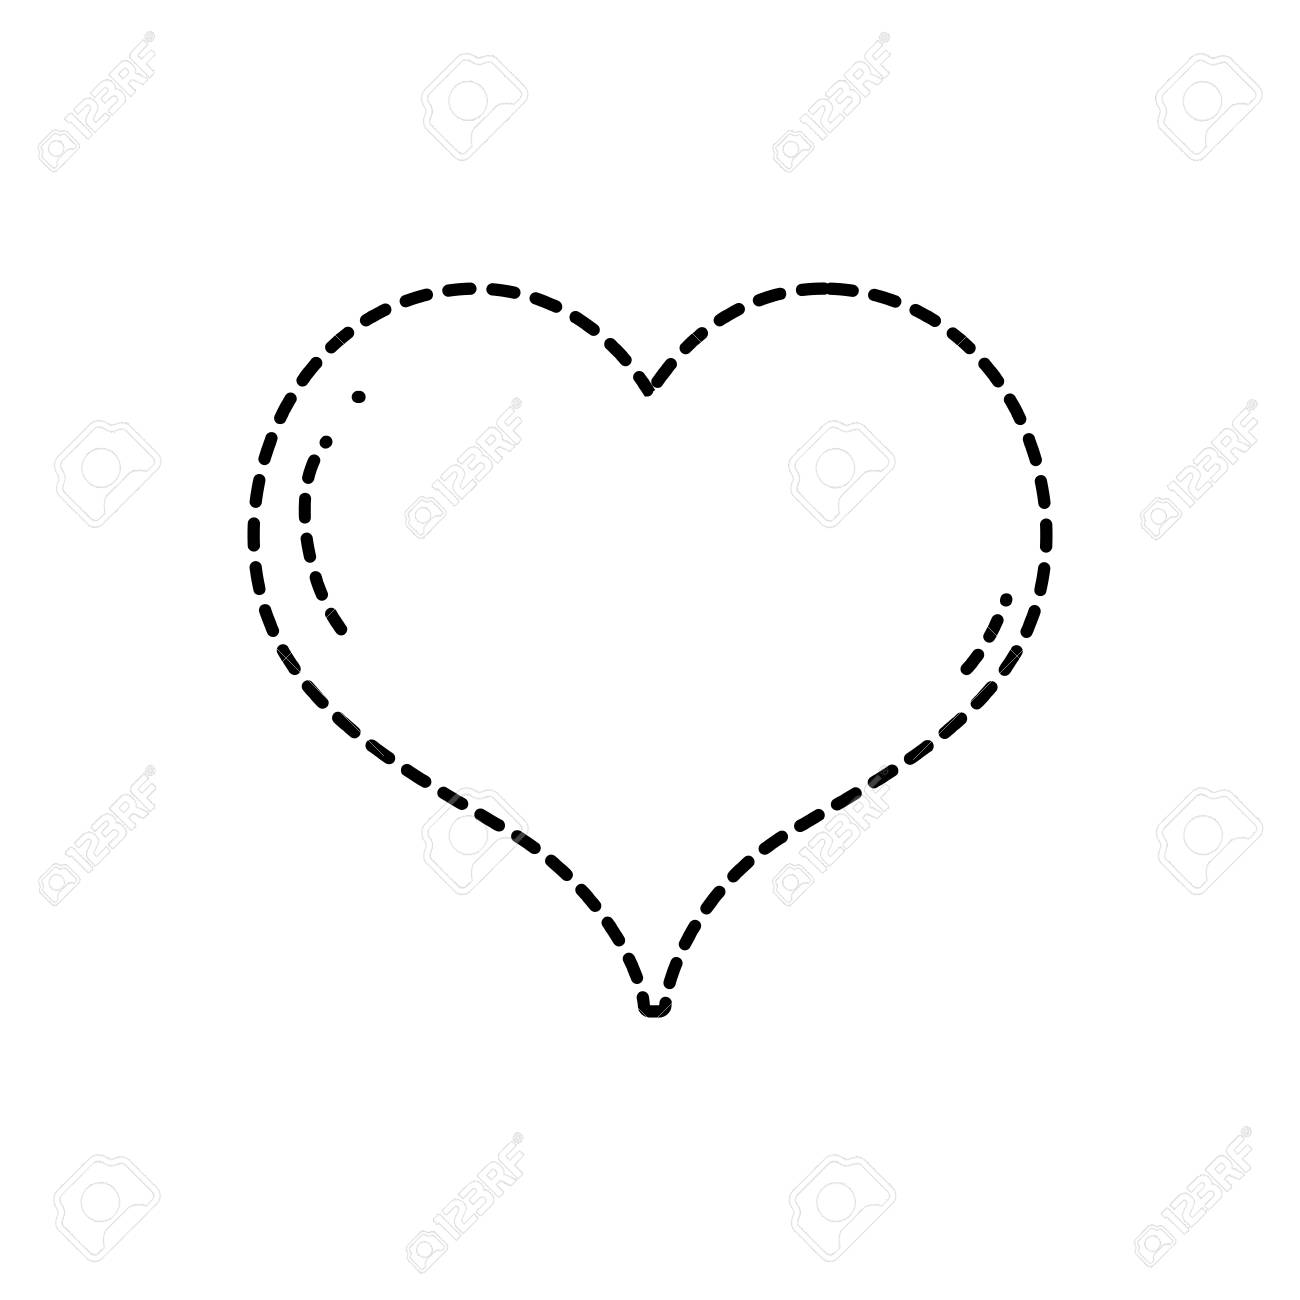 Dotted Shape Heart Love Symbol Of Passion Art Royalty Free Cliparts